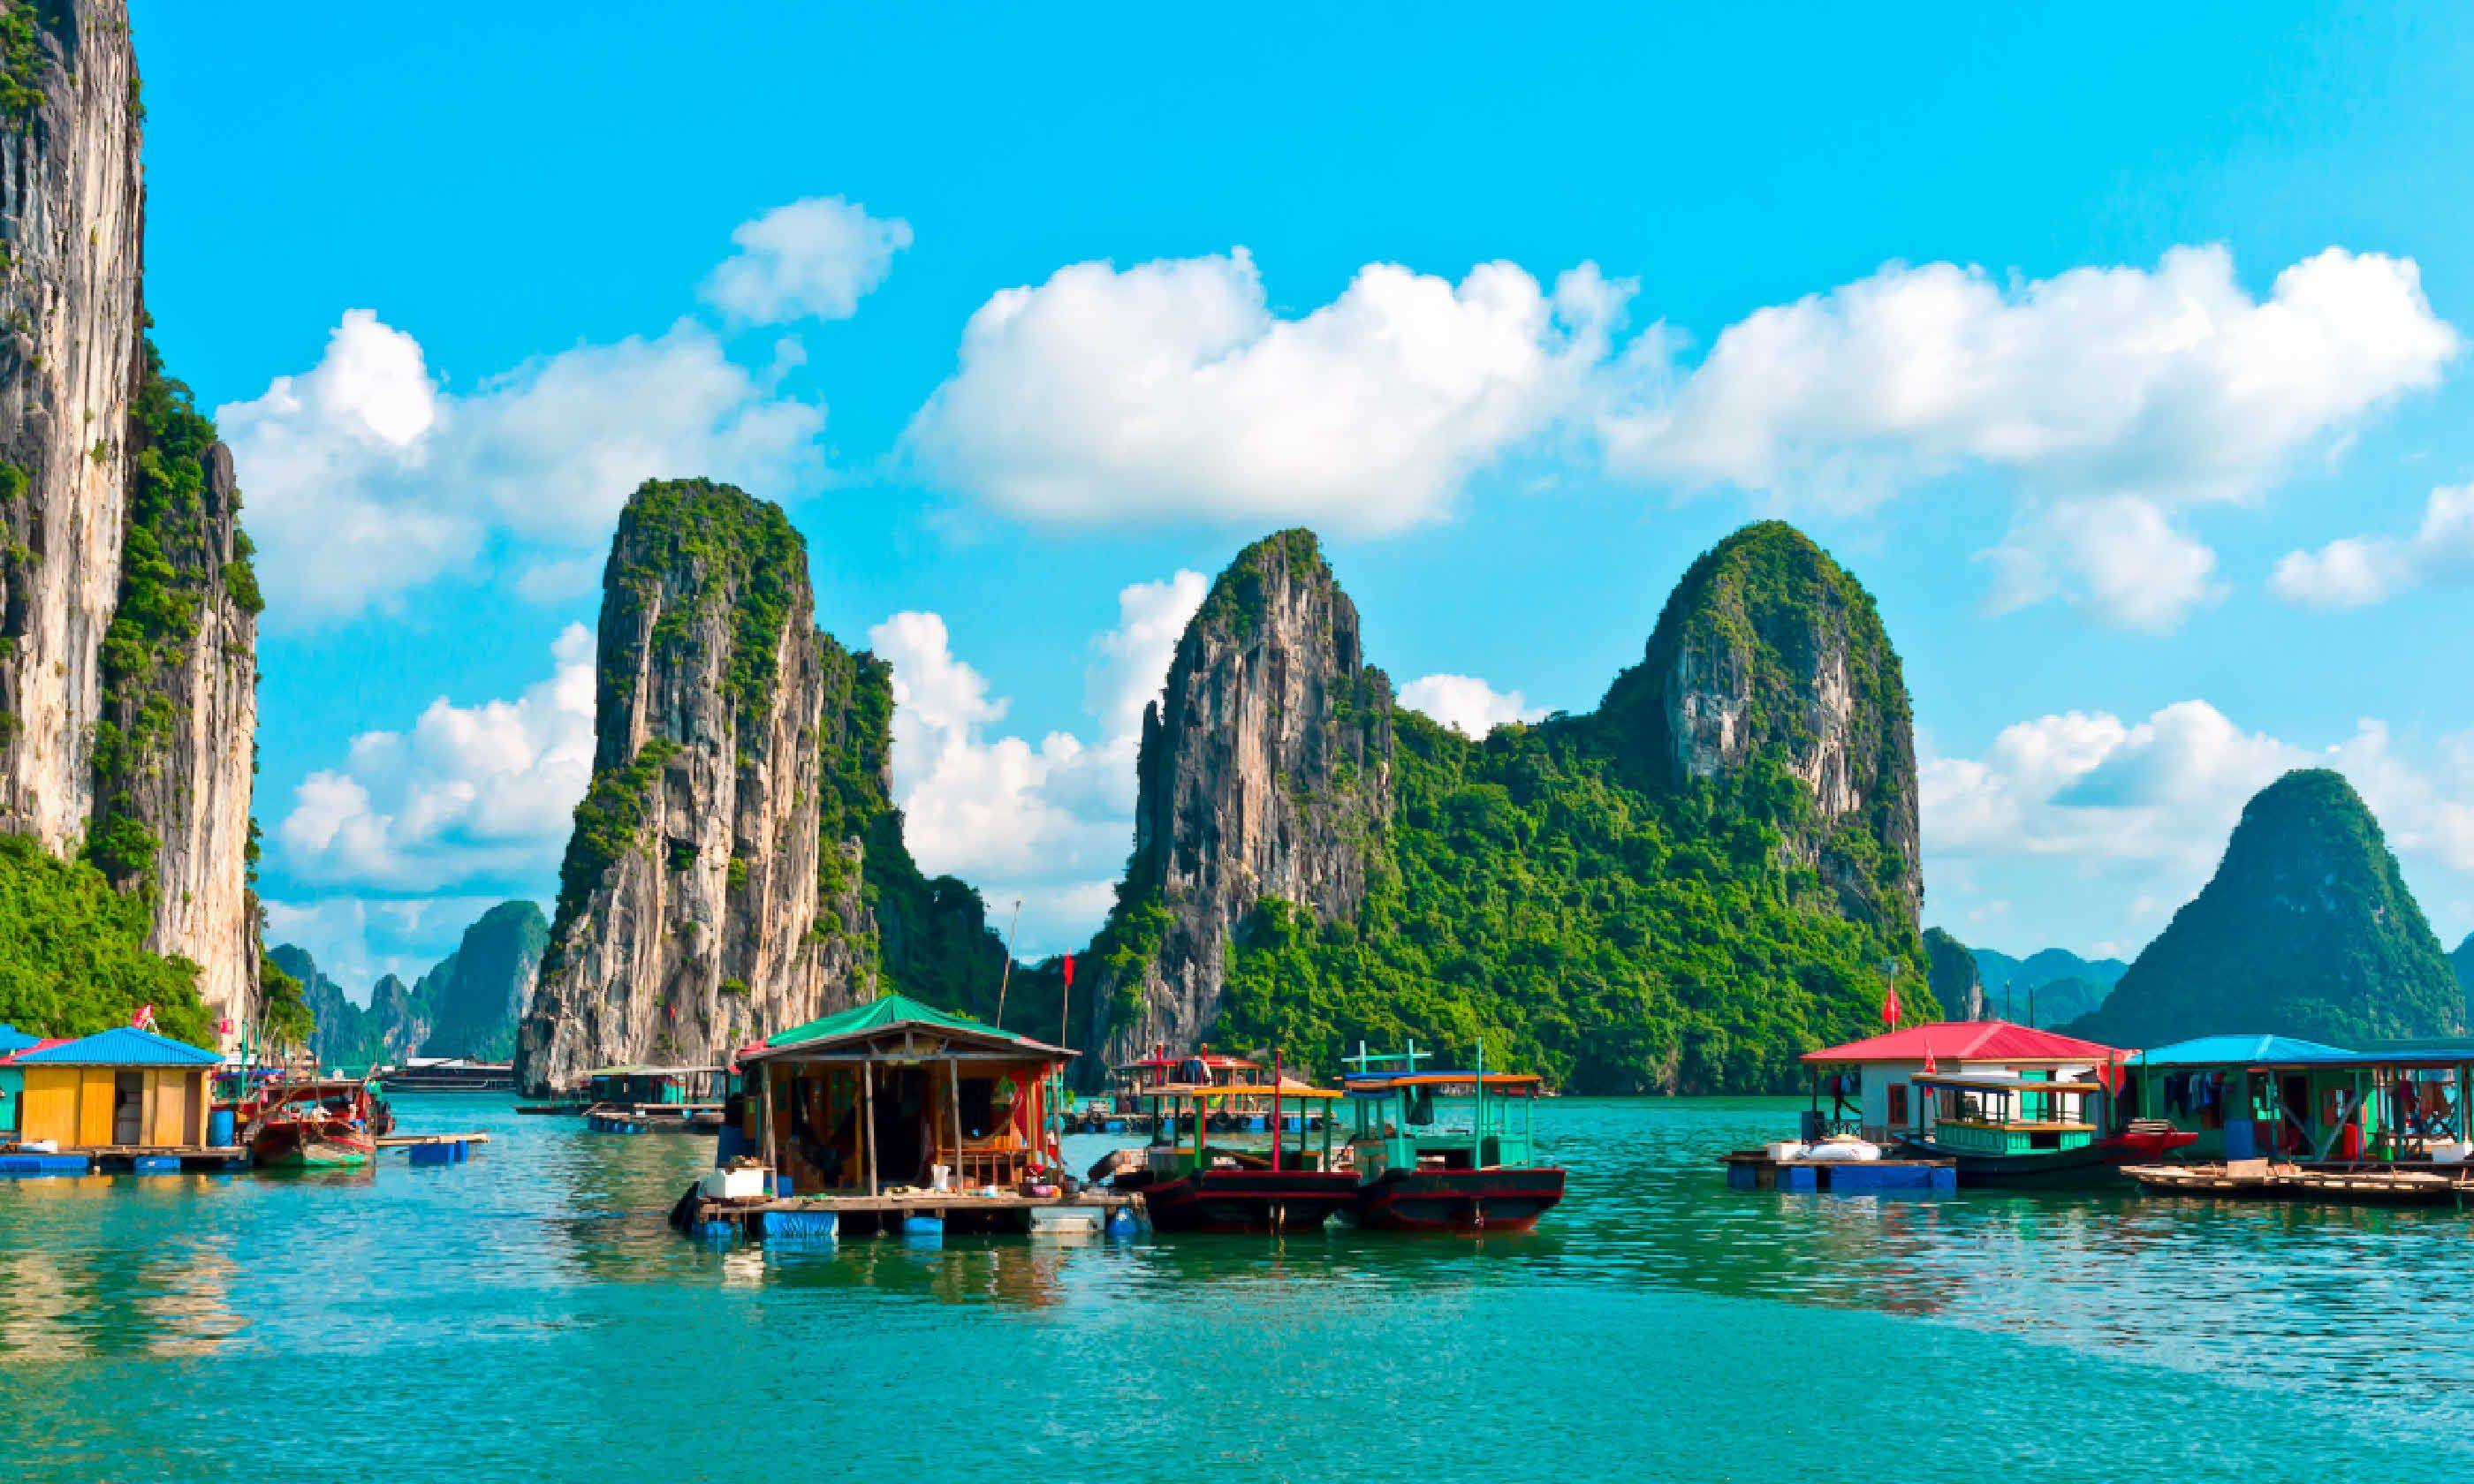 Floating village and rock islands in Halong Bay, Vietnam (Shutterstock)